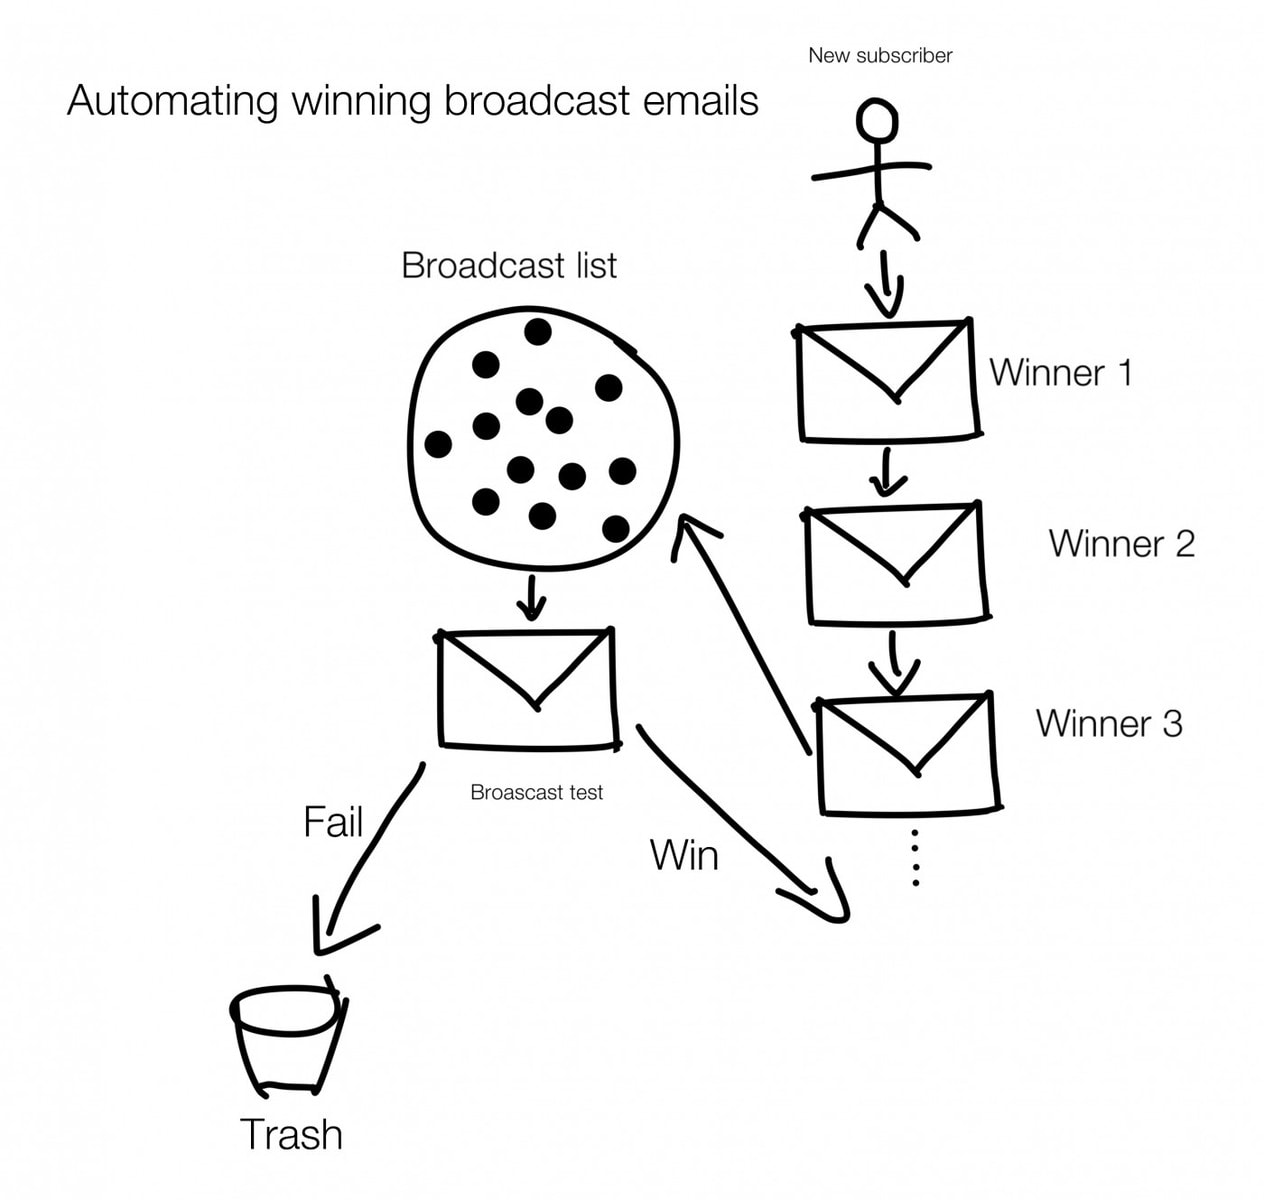 Automating winning broadcast emails